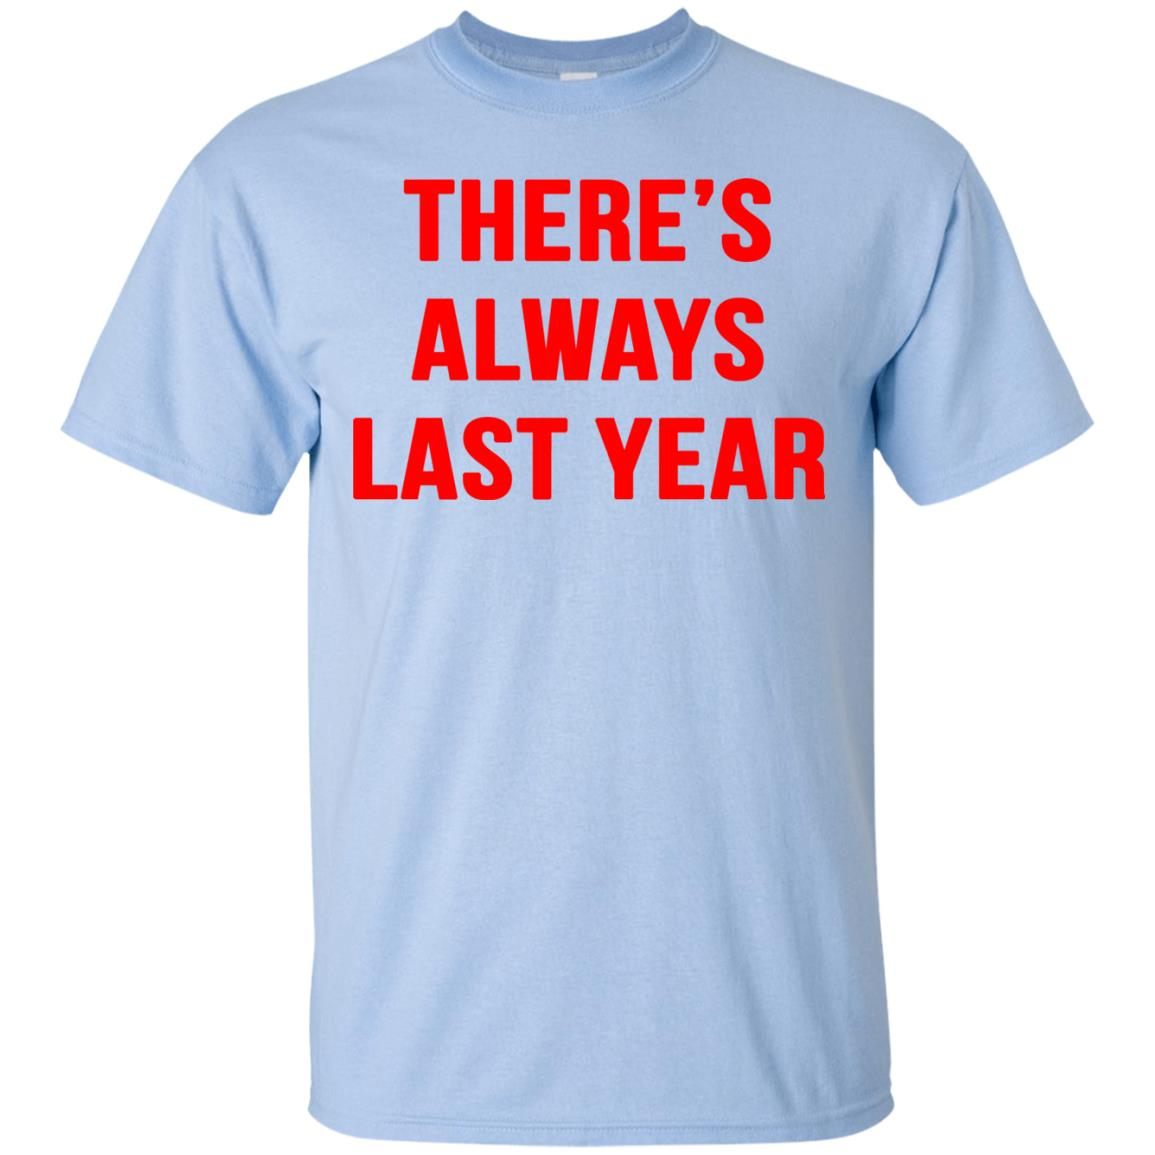 image 1916 - There's always last year t-shirt, long sleeve